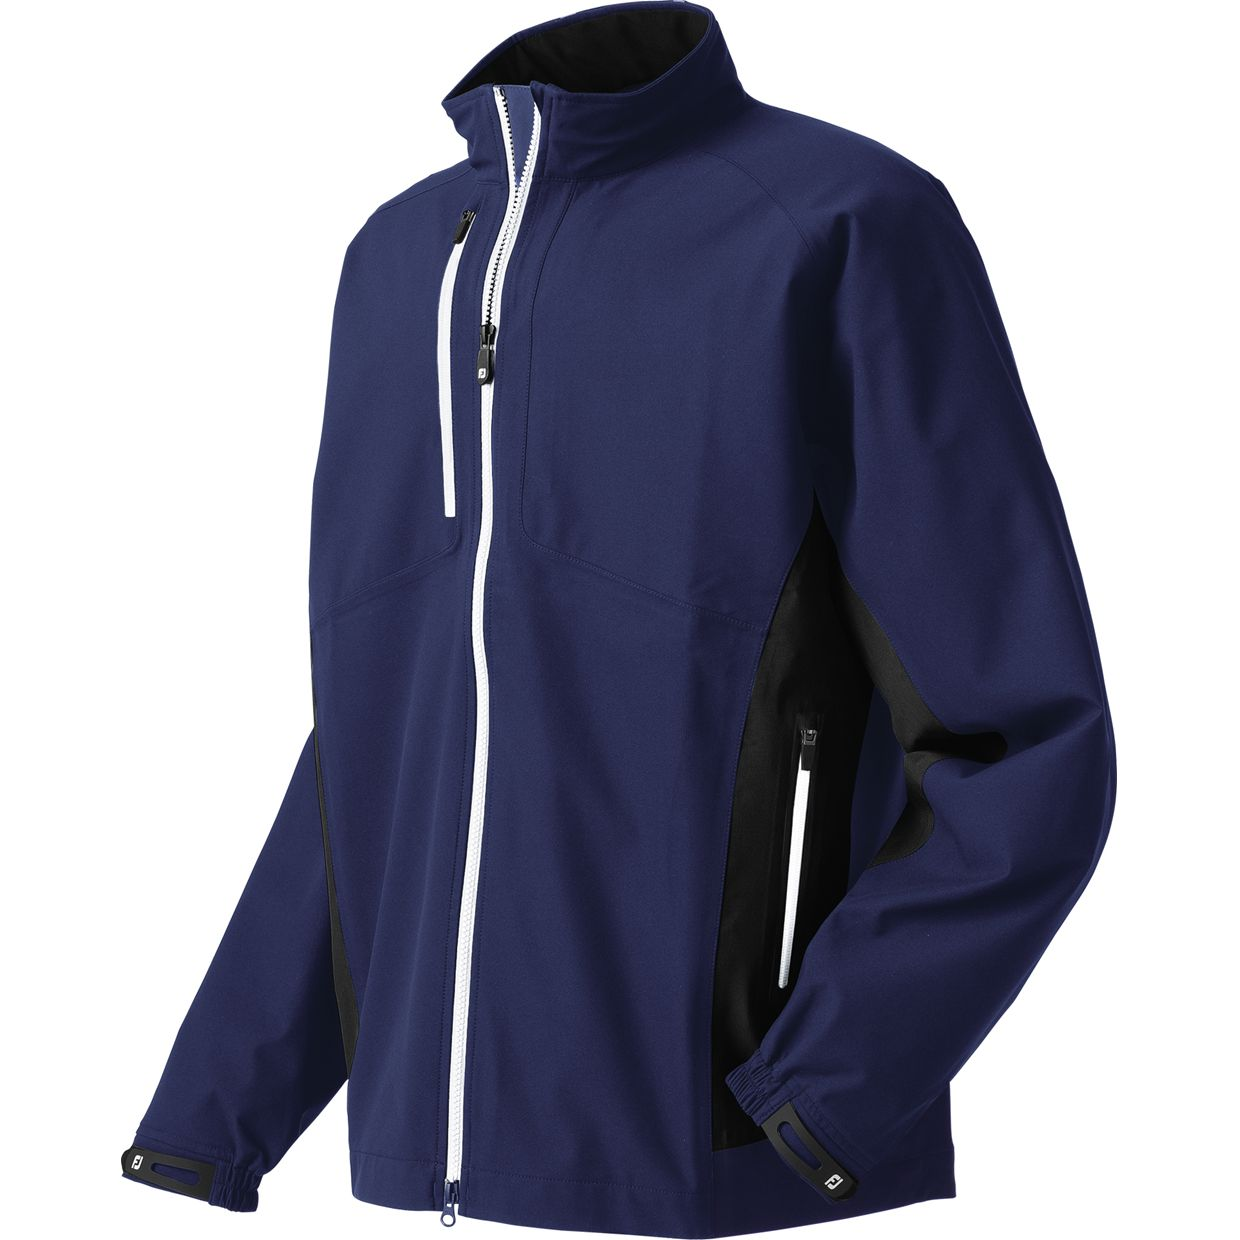 Footjoy Dryjoys Tour Xp Rainwear Apparel At